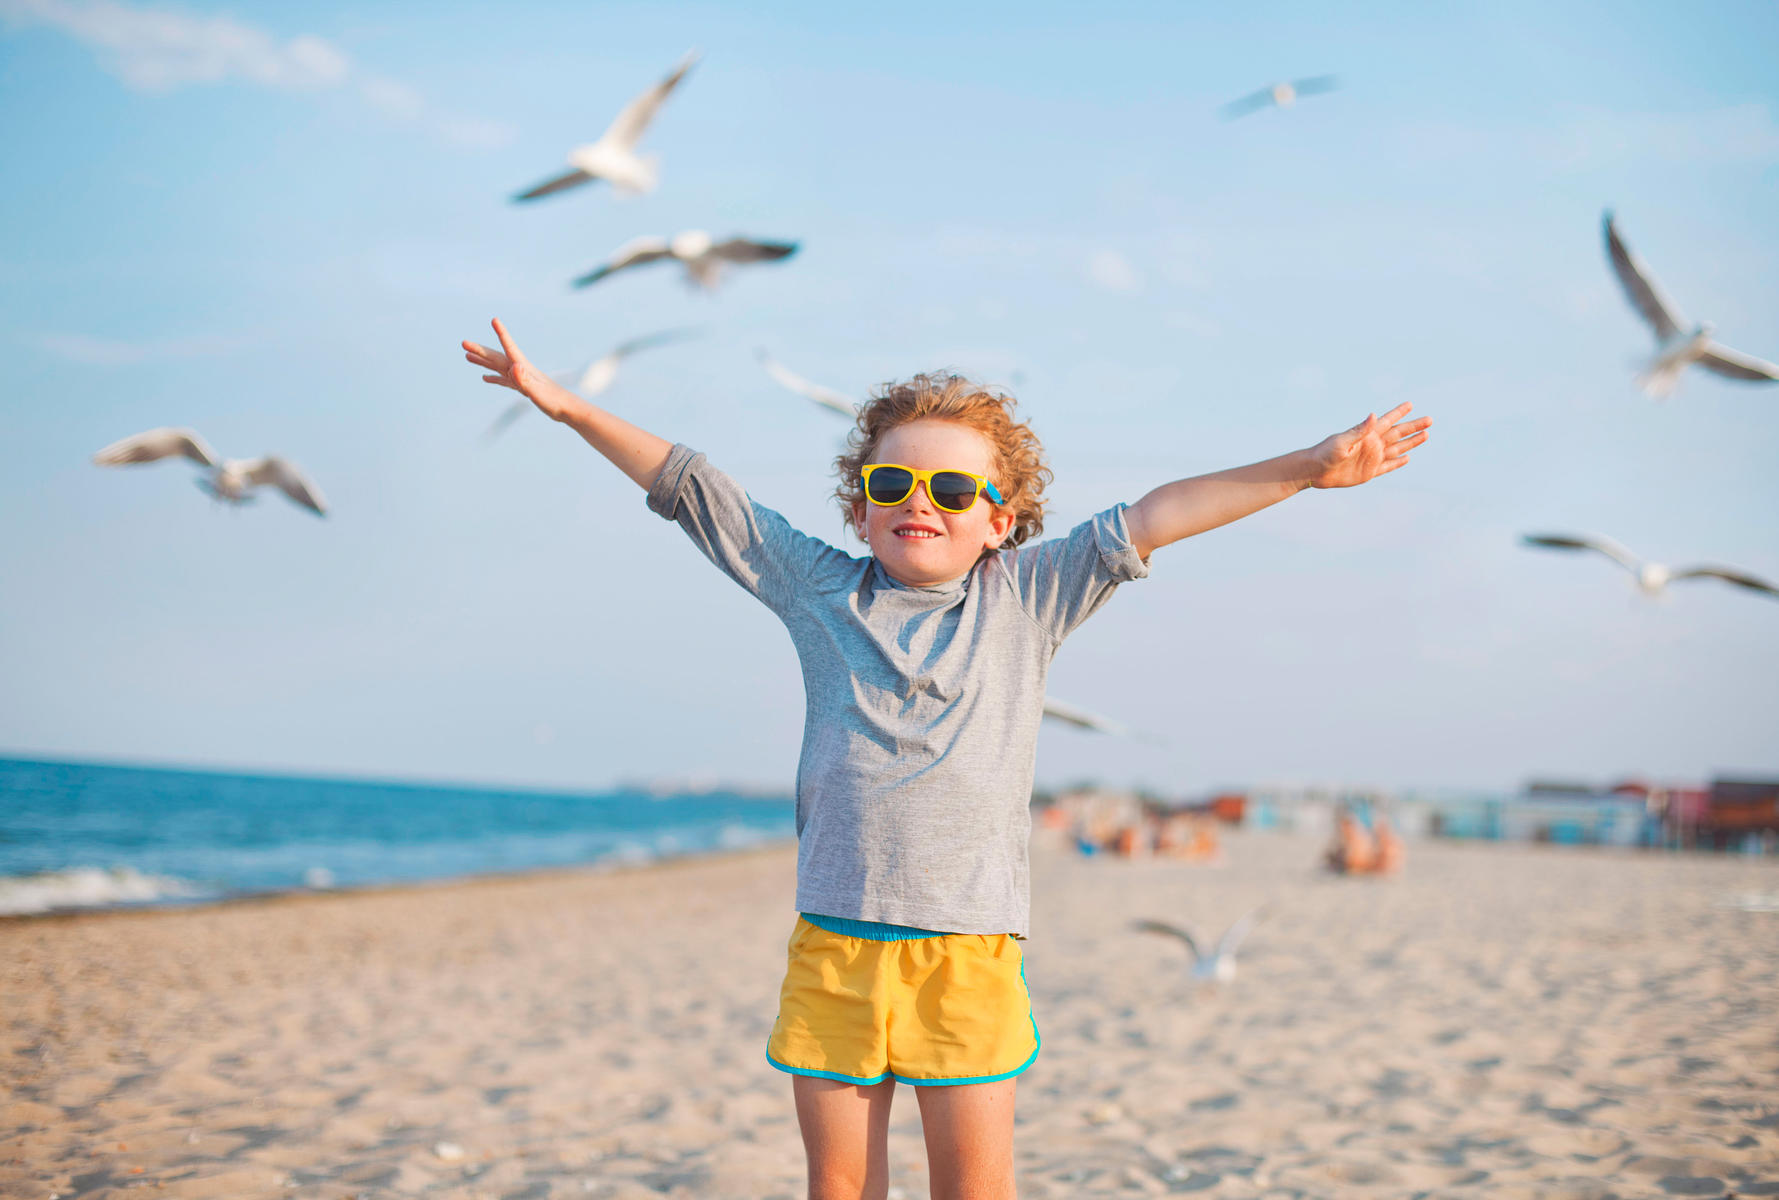 Boy on Beach In Sunglasses Arms Up Around Seagulls